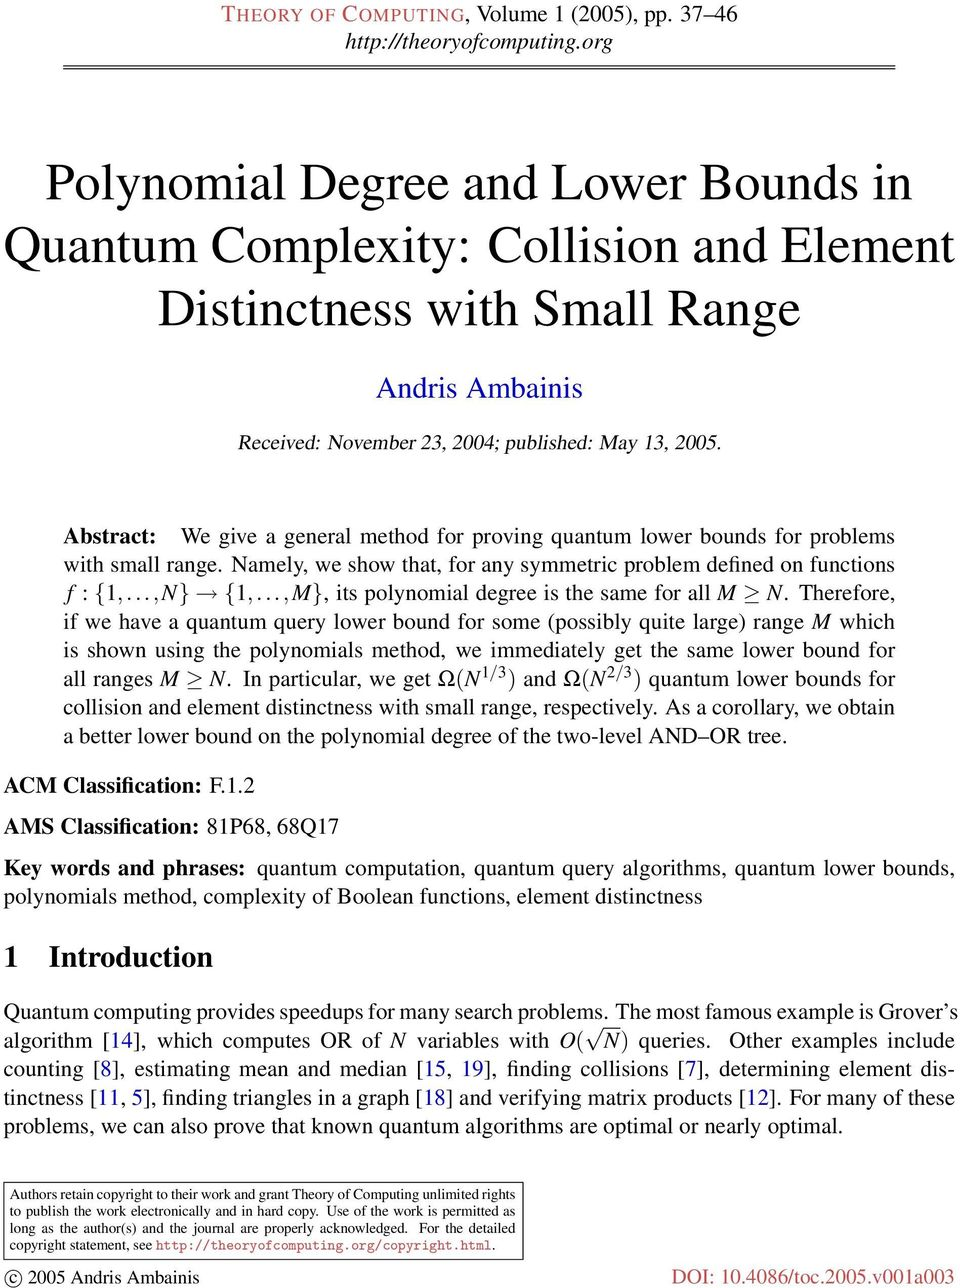 Abstract: We give a general method for proving quantum lower bounds for problems with small range. Namely, we show that, for any symmetric problem defined on functions f : {1,...,N} {1,.